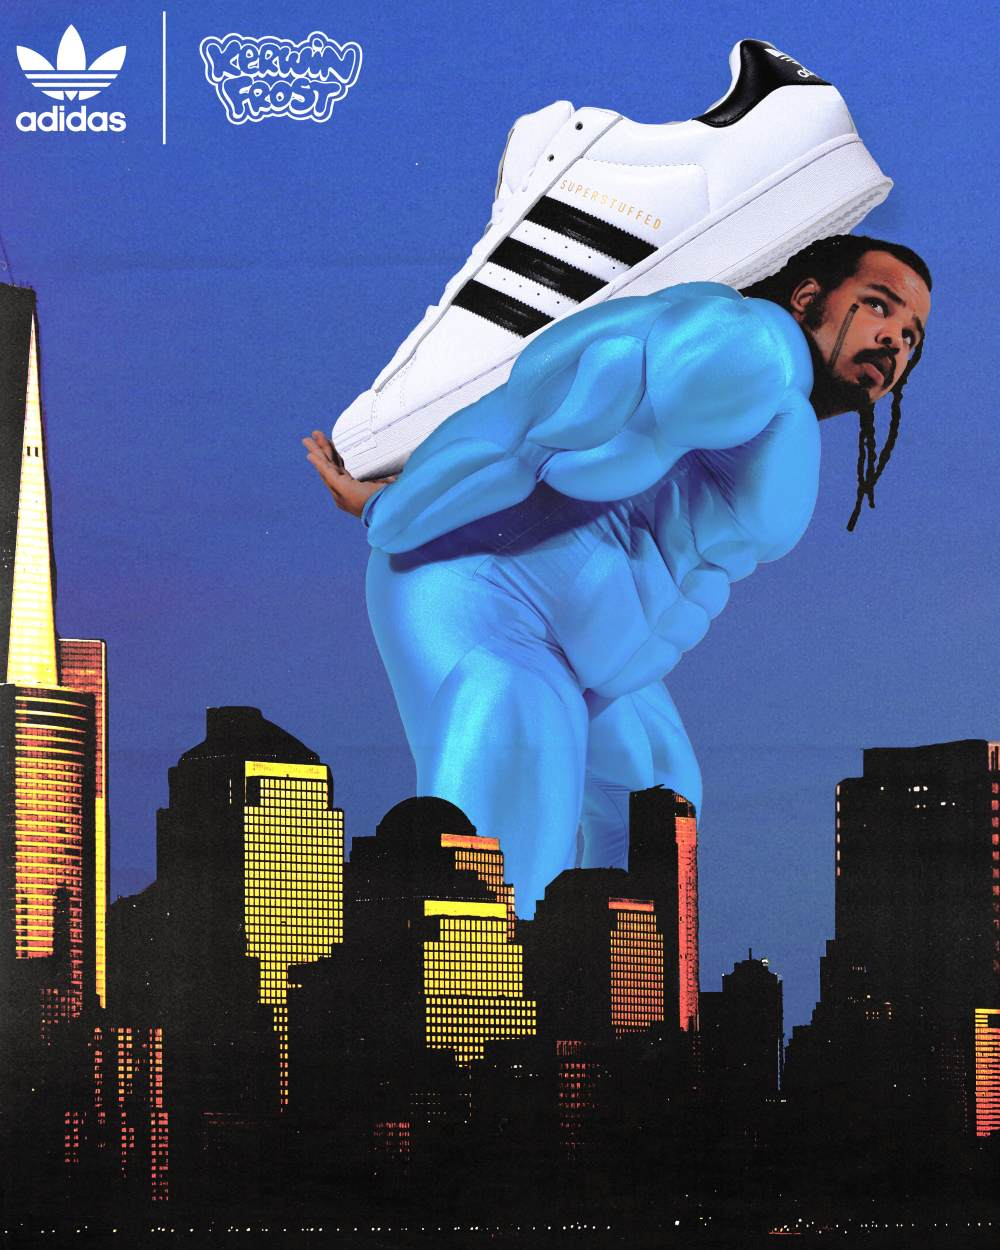 """kerwin frost carrying big shoes - Kerwin Frost x Adidas 推出极有创意的 """"SUPERSTUFFED """"小丑鞋!"""